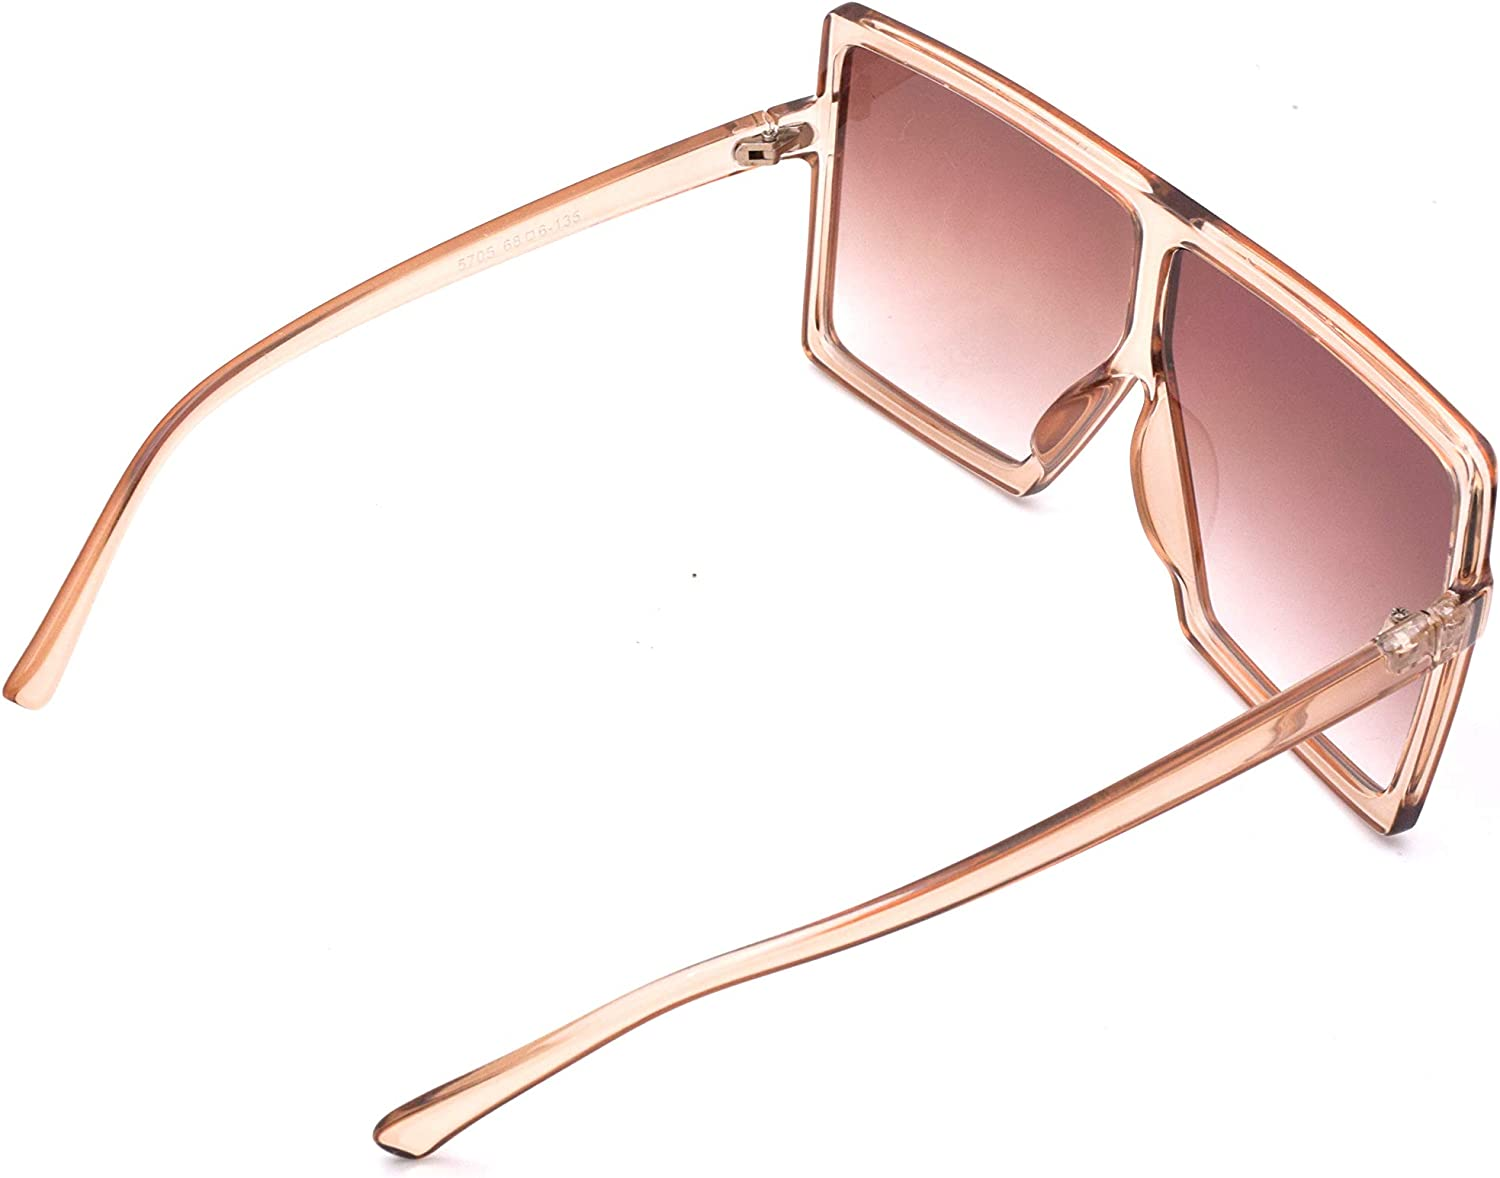 JUSLINK Oversized Square Sunglasses for Women Flat Top Fashion Shades